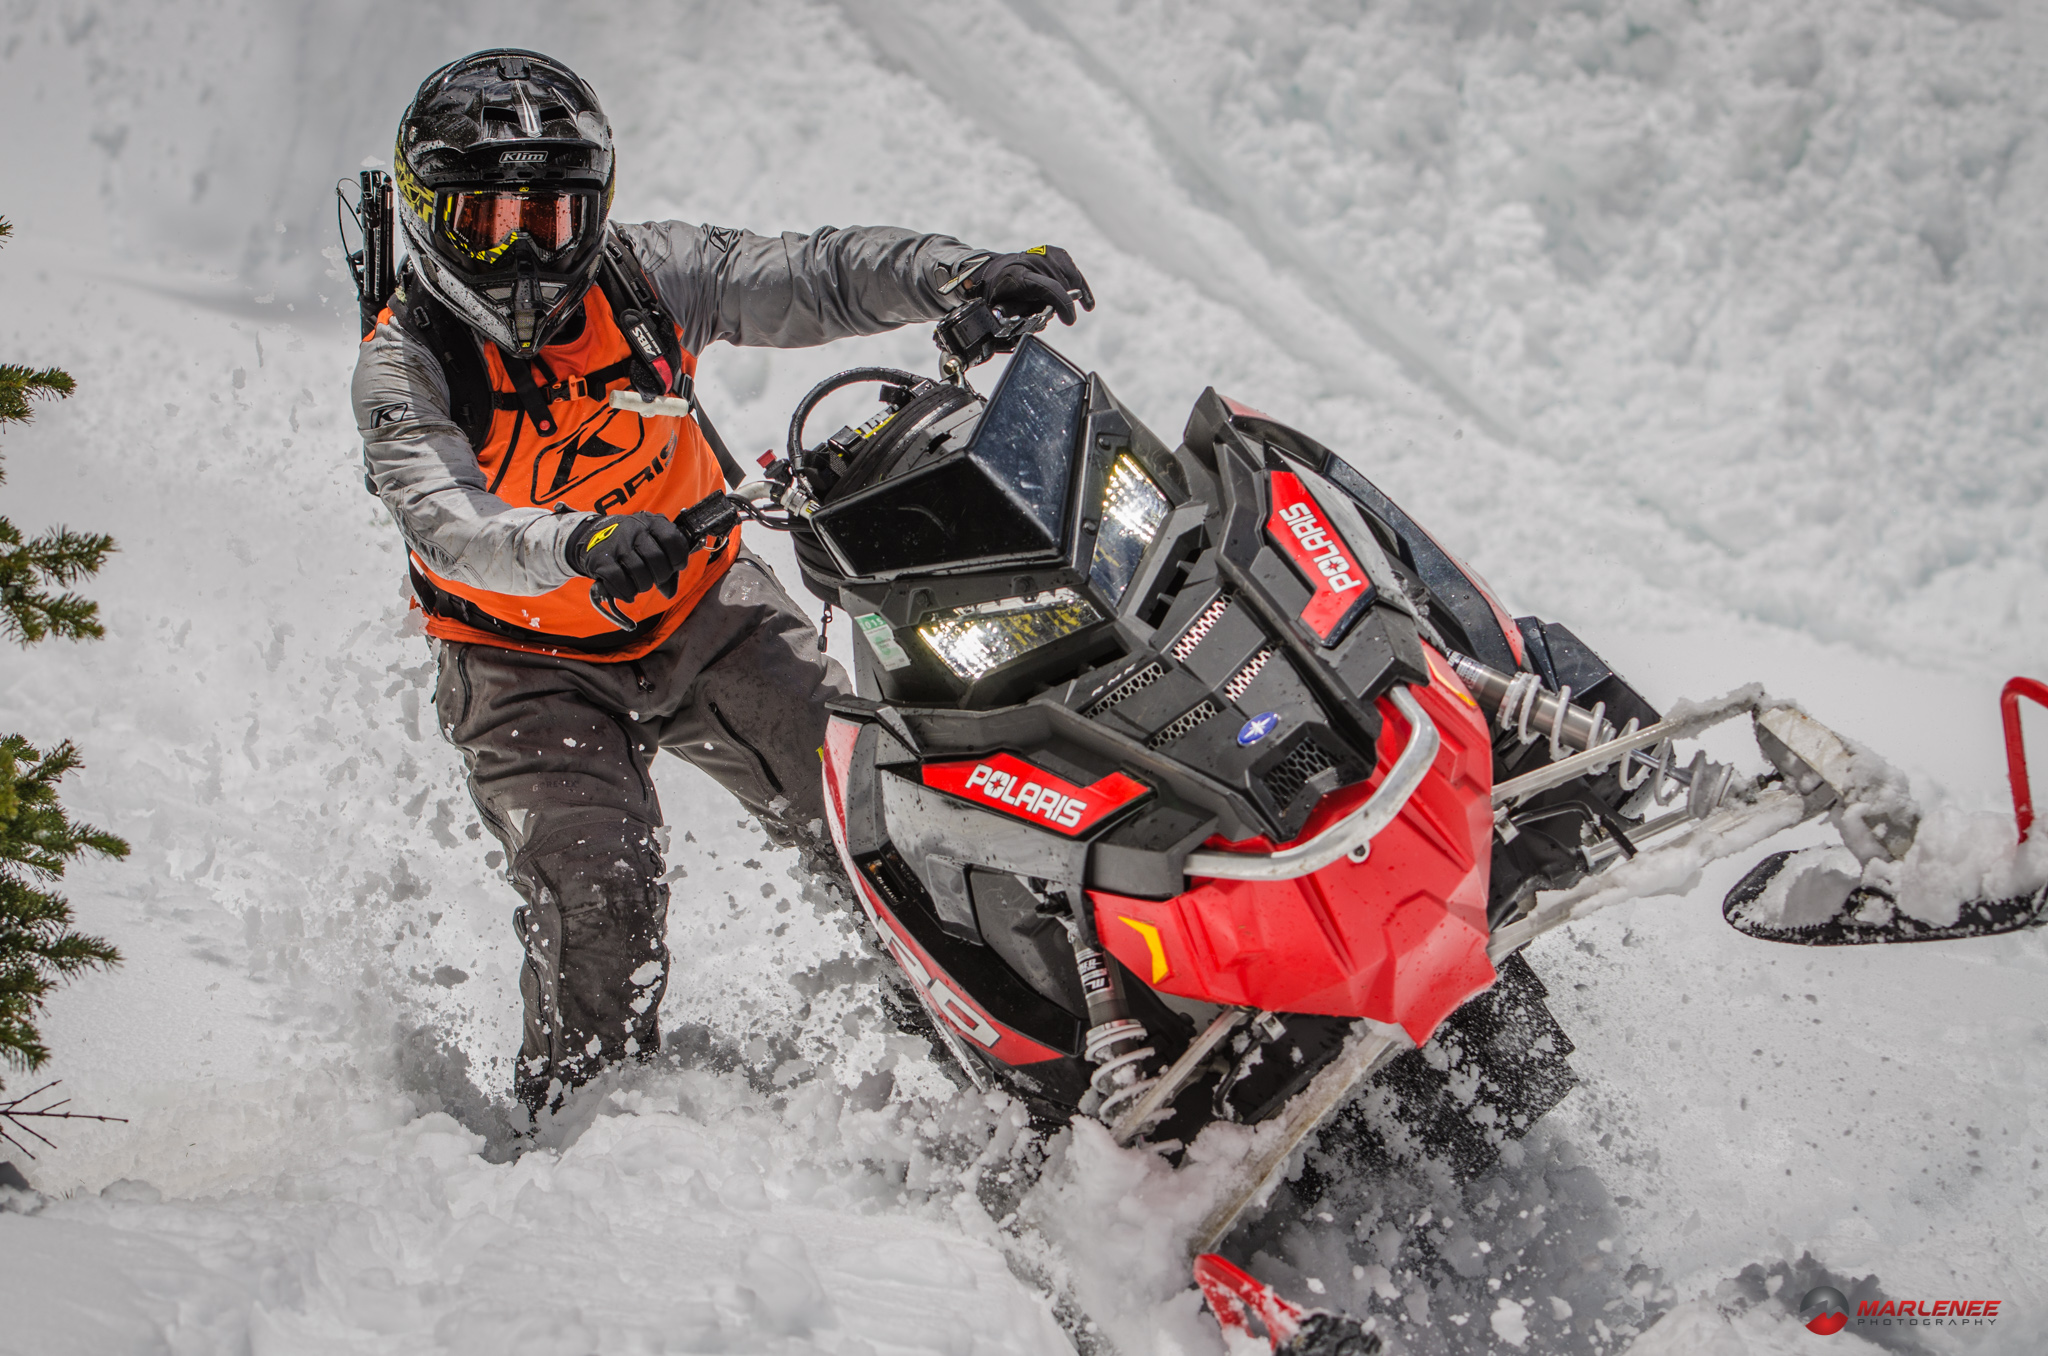 This isnt Keith Curtis, but it is a great picture of the PRO RMK 800 though Photo: marleneephotography